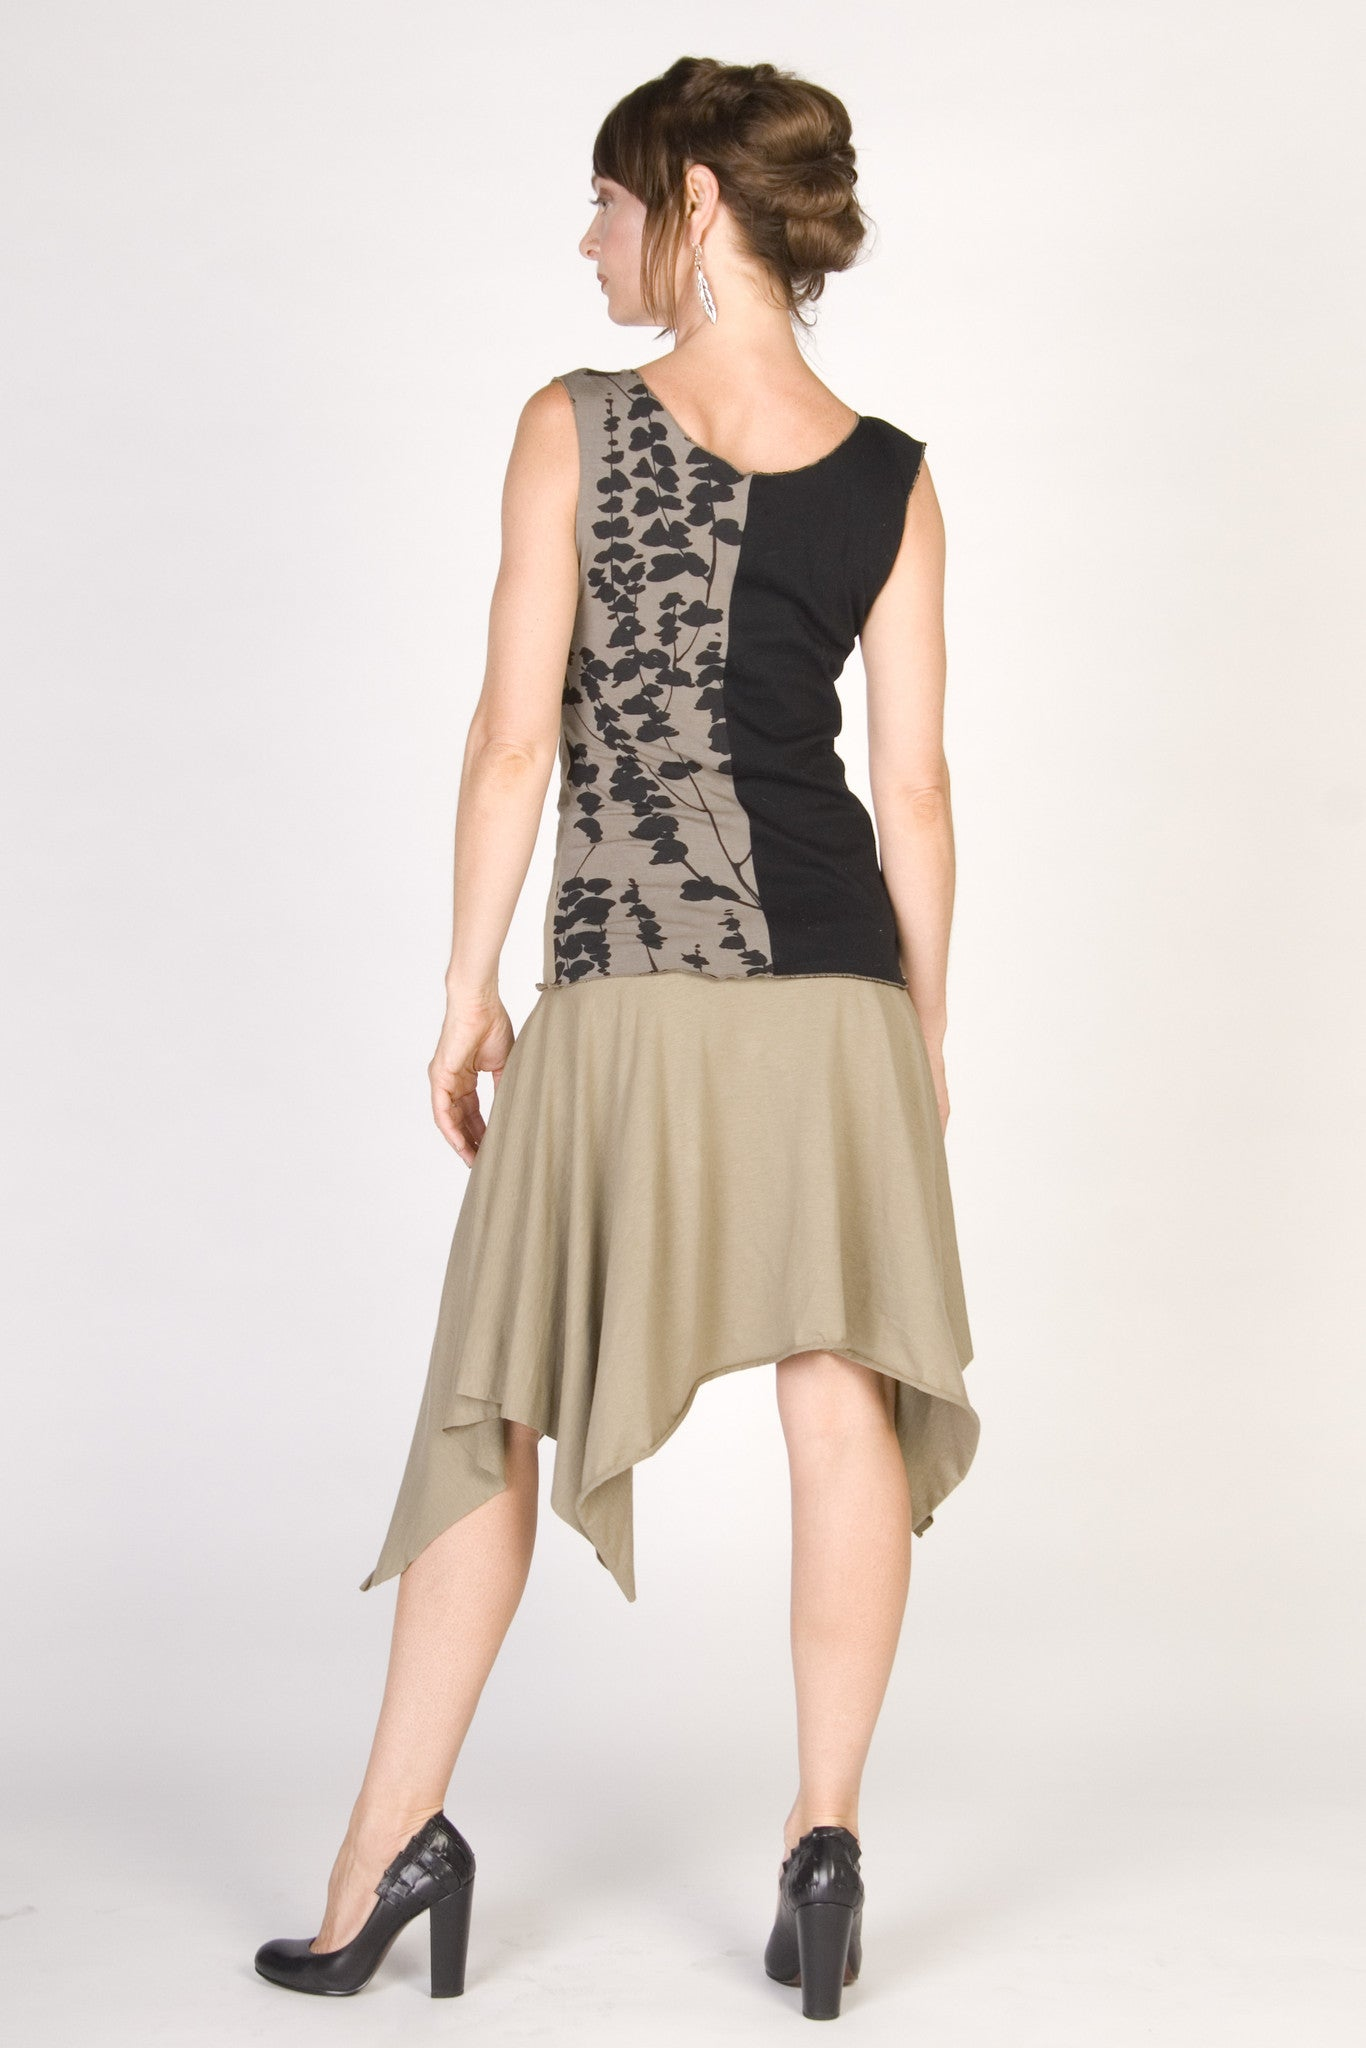 Hankerchief Skirt